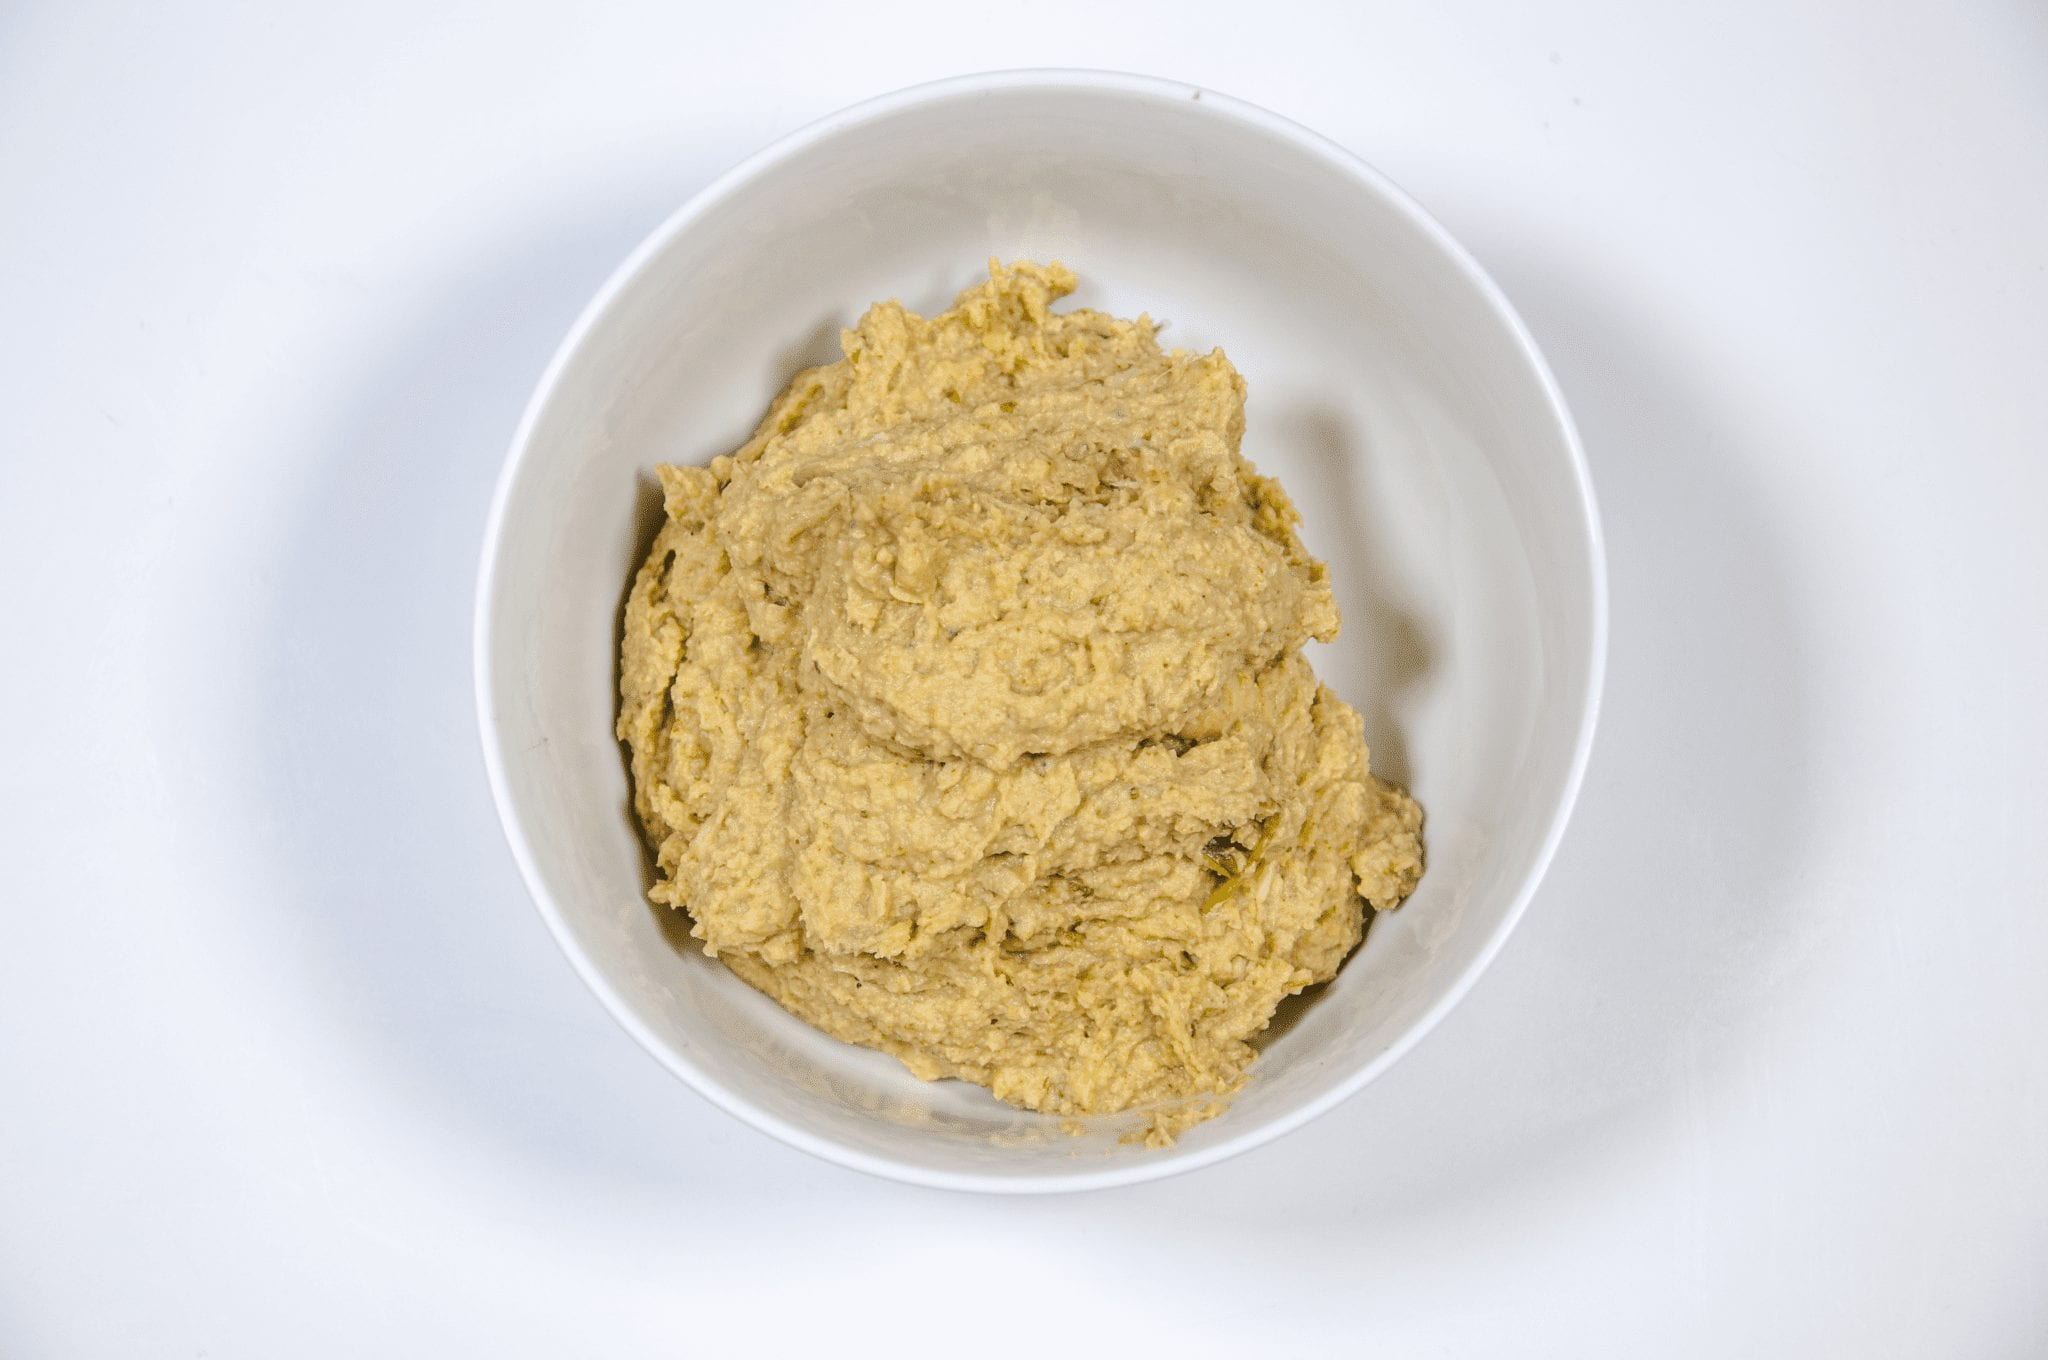 Blend to a smooth paste   https://theyumyumclub.com/2019/07/05/falafels-fit-for-the-pharaohs/